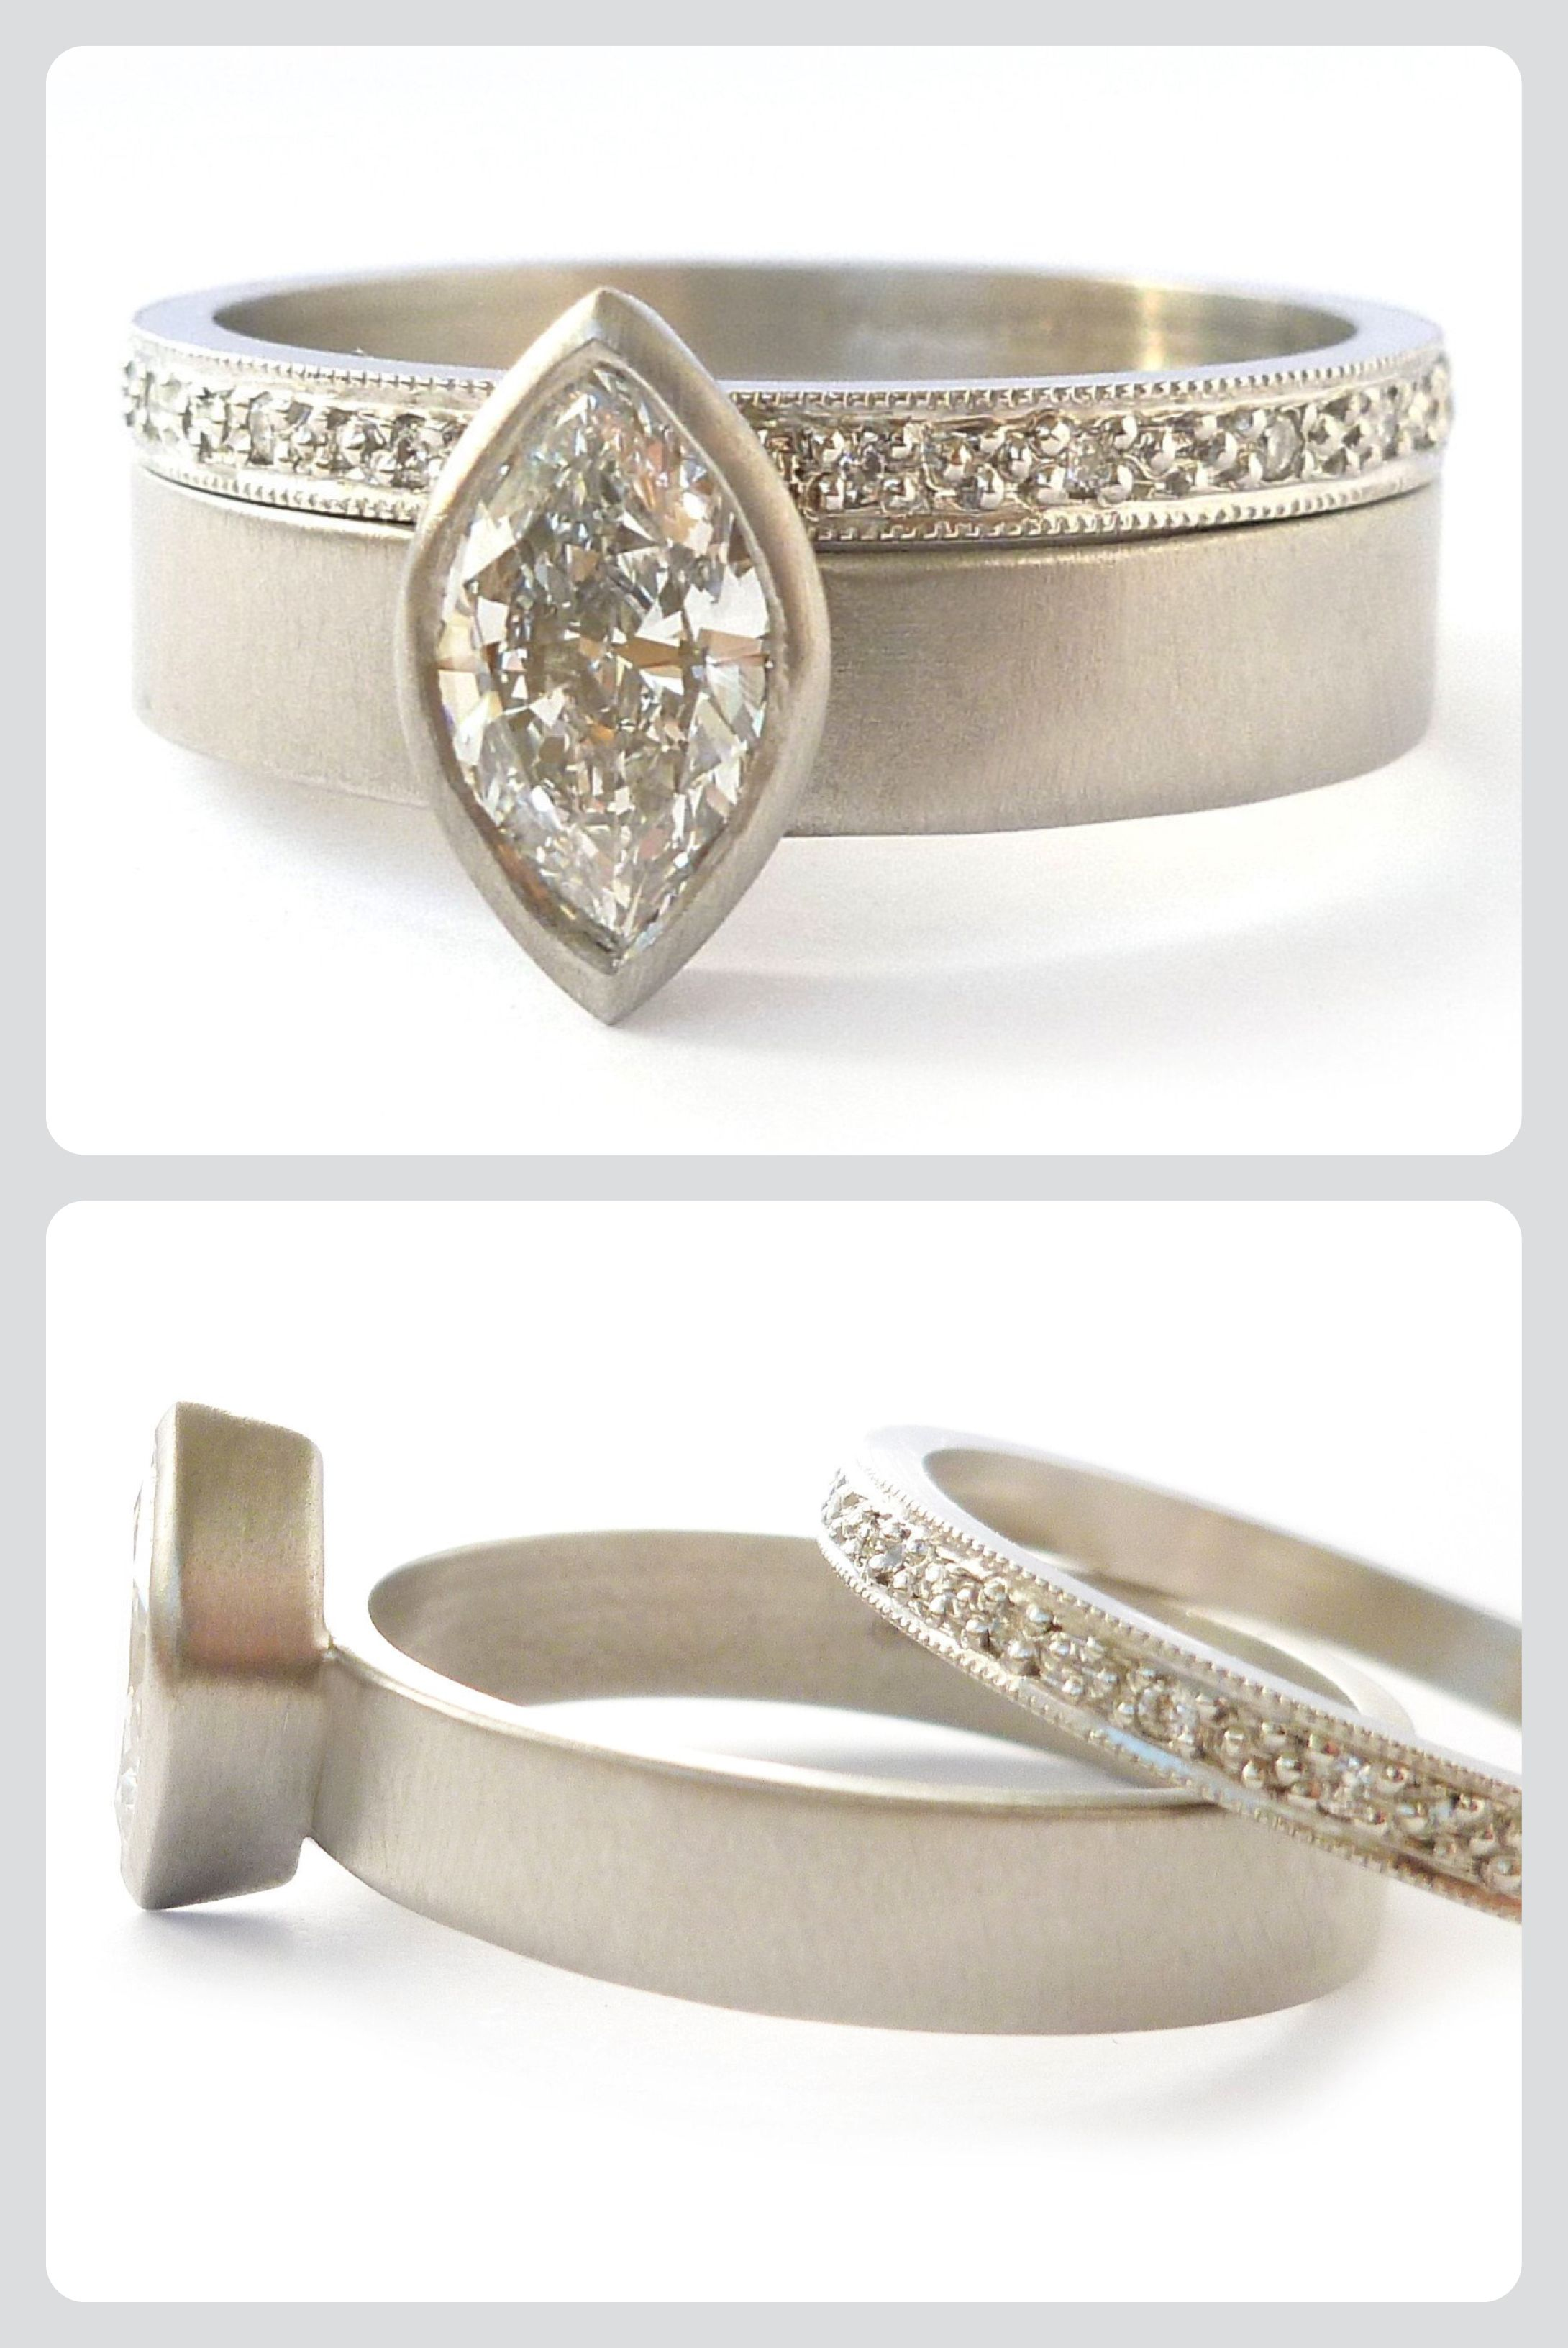 1670999c1 Unique platinum engagement ring, wedding ring, commitment ring, or simply a  bespoke dress ring! A set of two that stack together. Designed and handmade  by ...